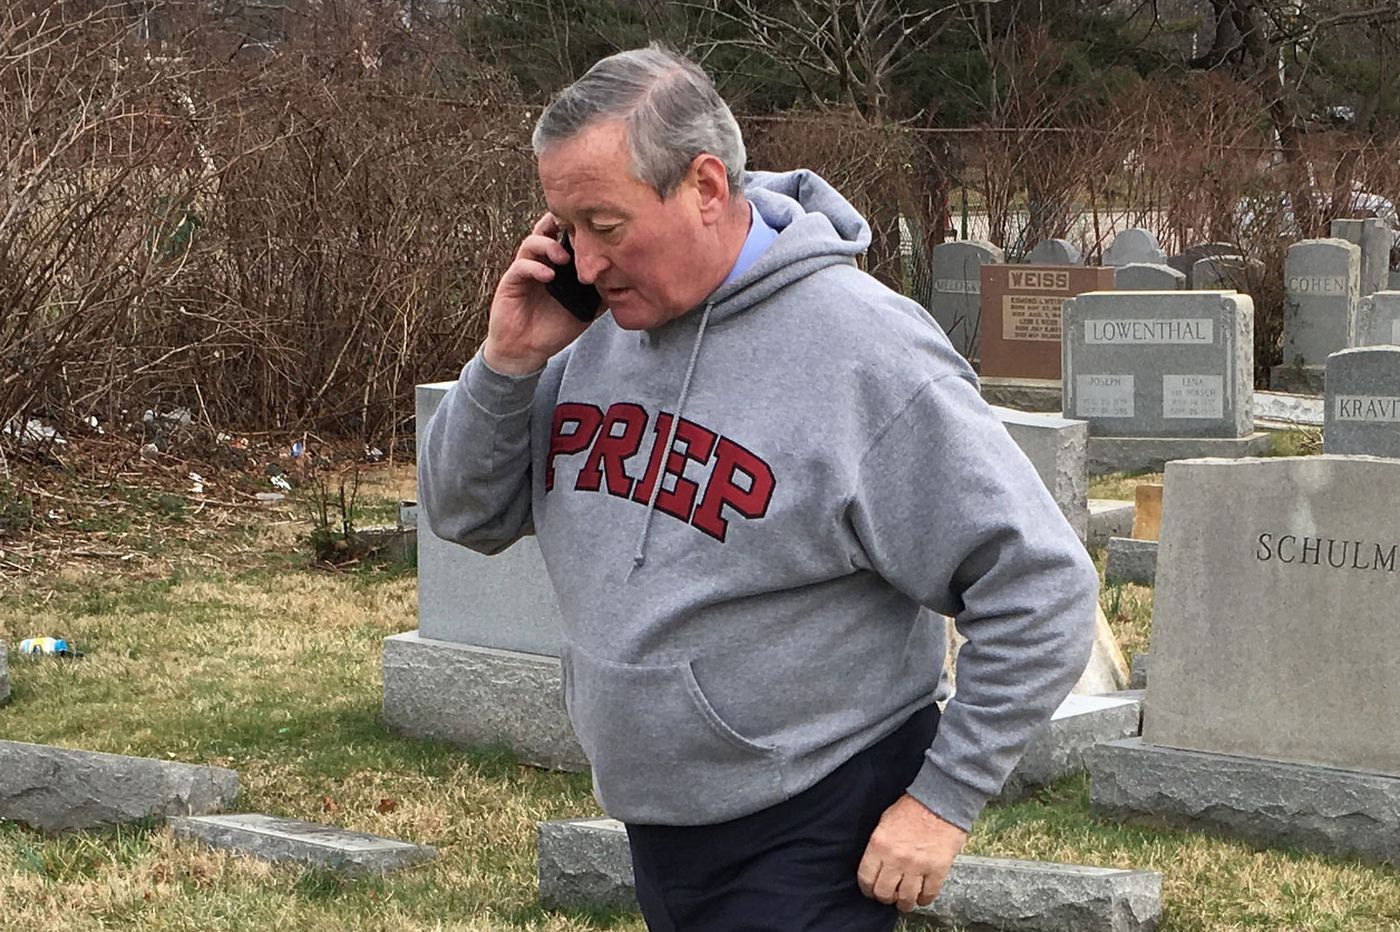 'Old-school' Philadelphia Mayor Jim Kenney deleted years' worth of cell phone text messages